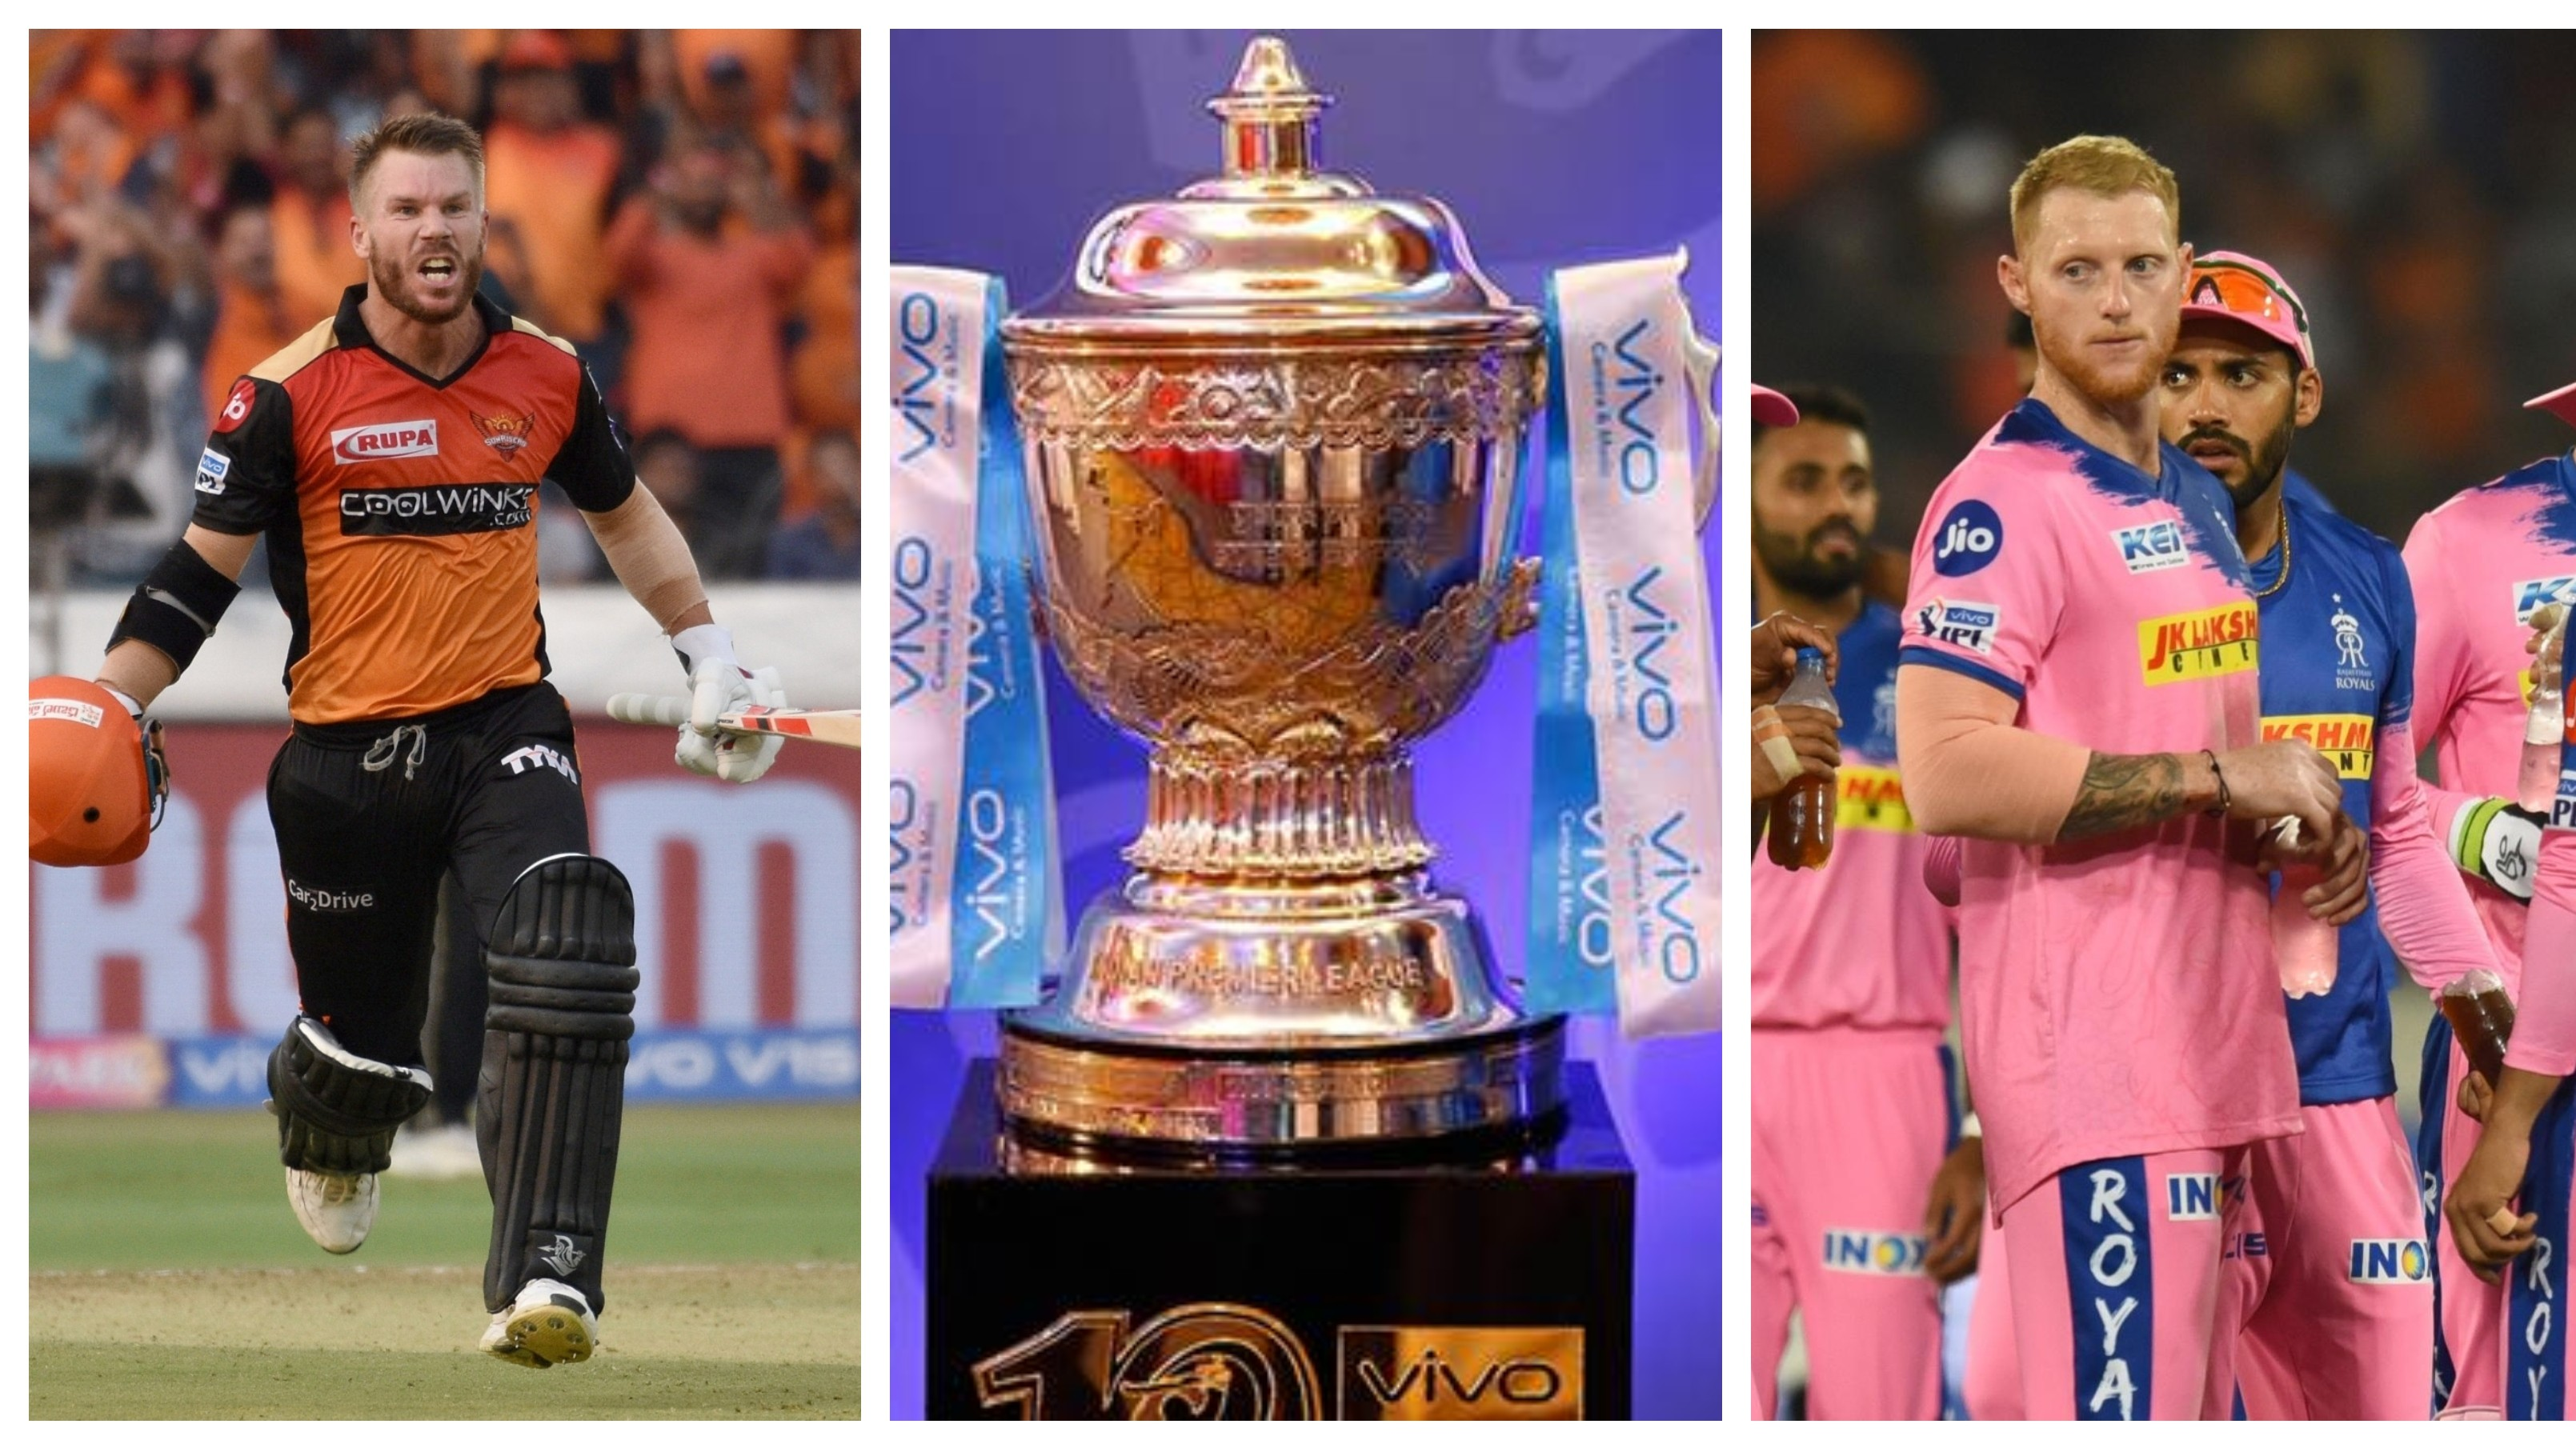 IPL 2020: Players from Australia, England might not feature in first week of the tournament, says report